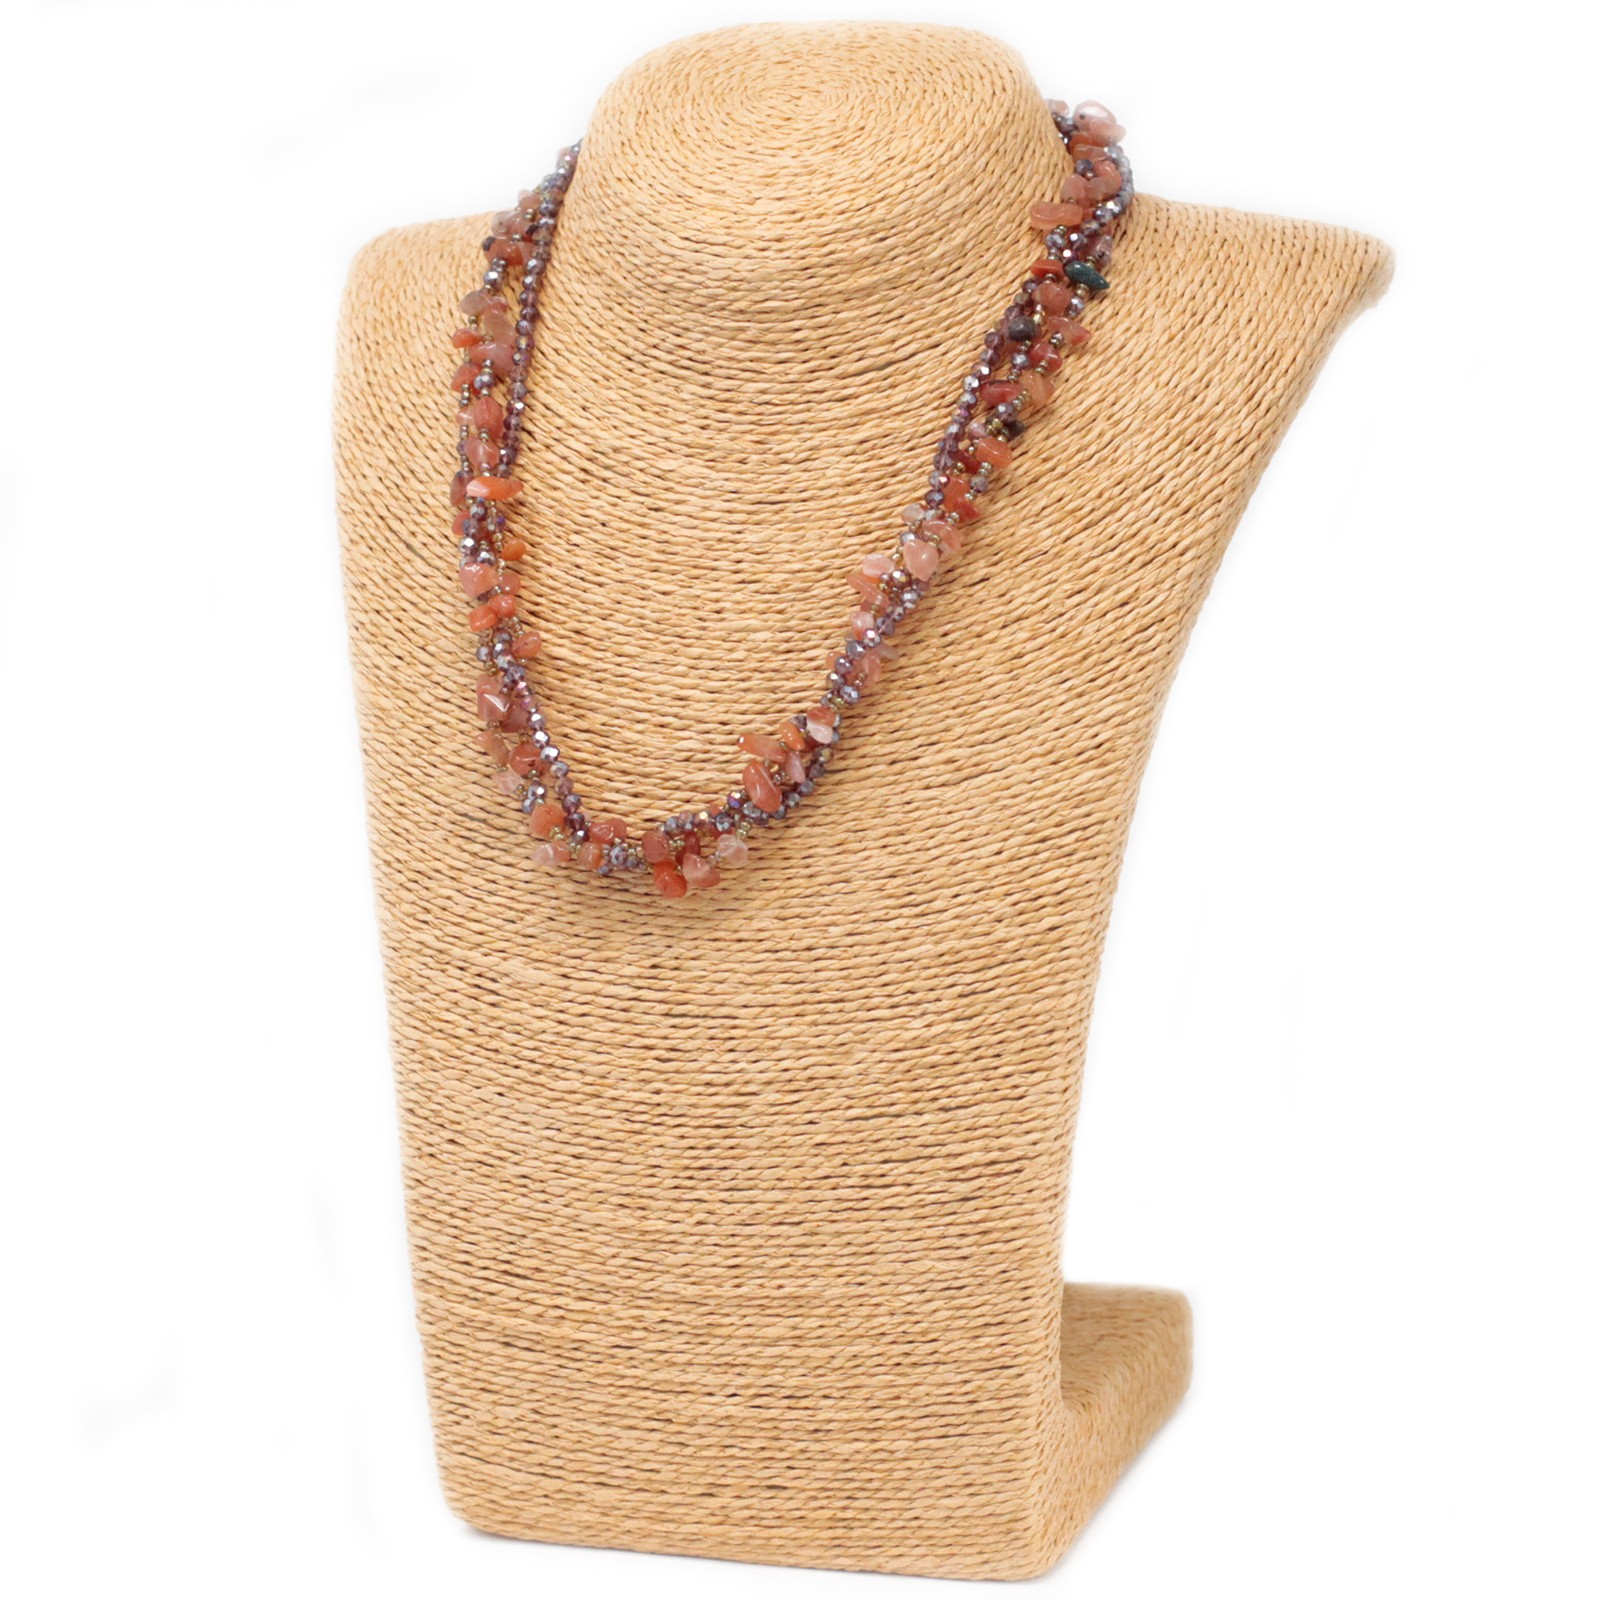 Chipstone & Bead Necklace - Red Agate